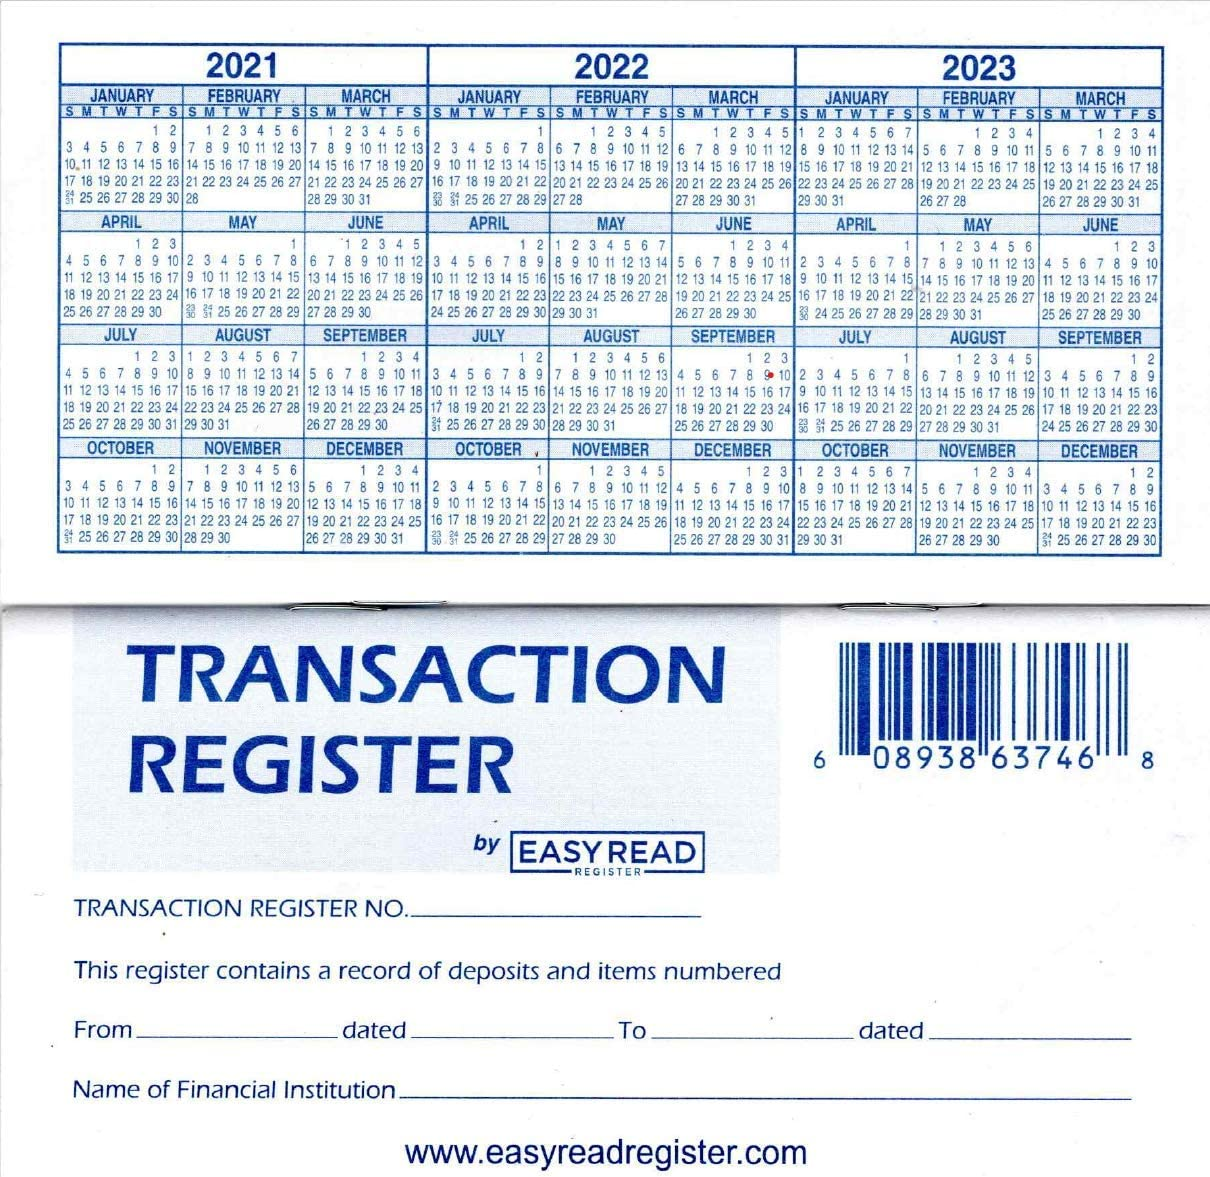 Amazon Com 12 Check Registers For Personal Checkbook Checkbook Ledger Transaction Registers Log For Personal Or Business Bank Checking Account Saving Account Deposit Credit Card And Large Booklet Office Products